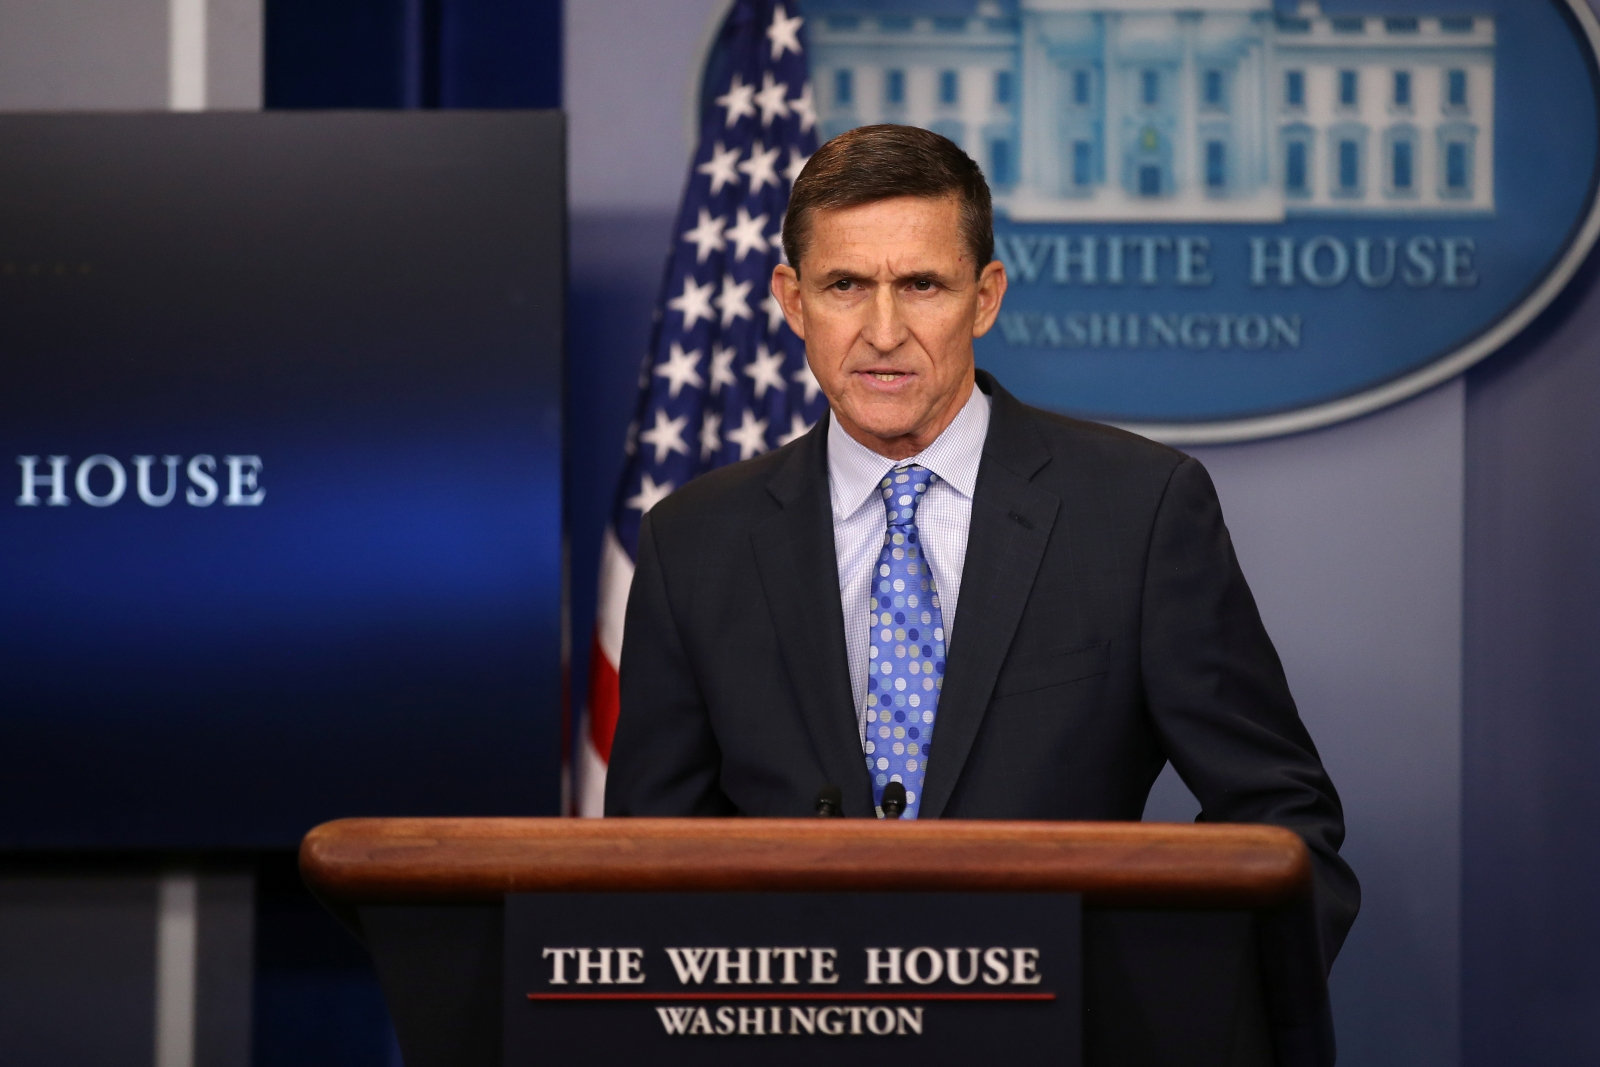 Michael Flynn warns Iran 2017